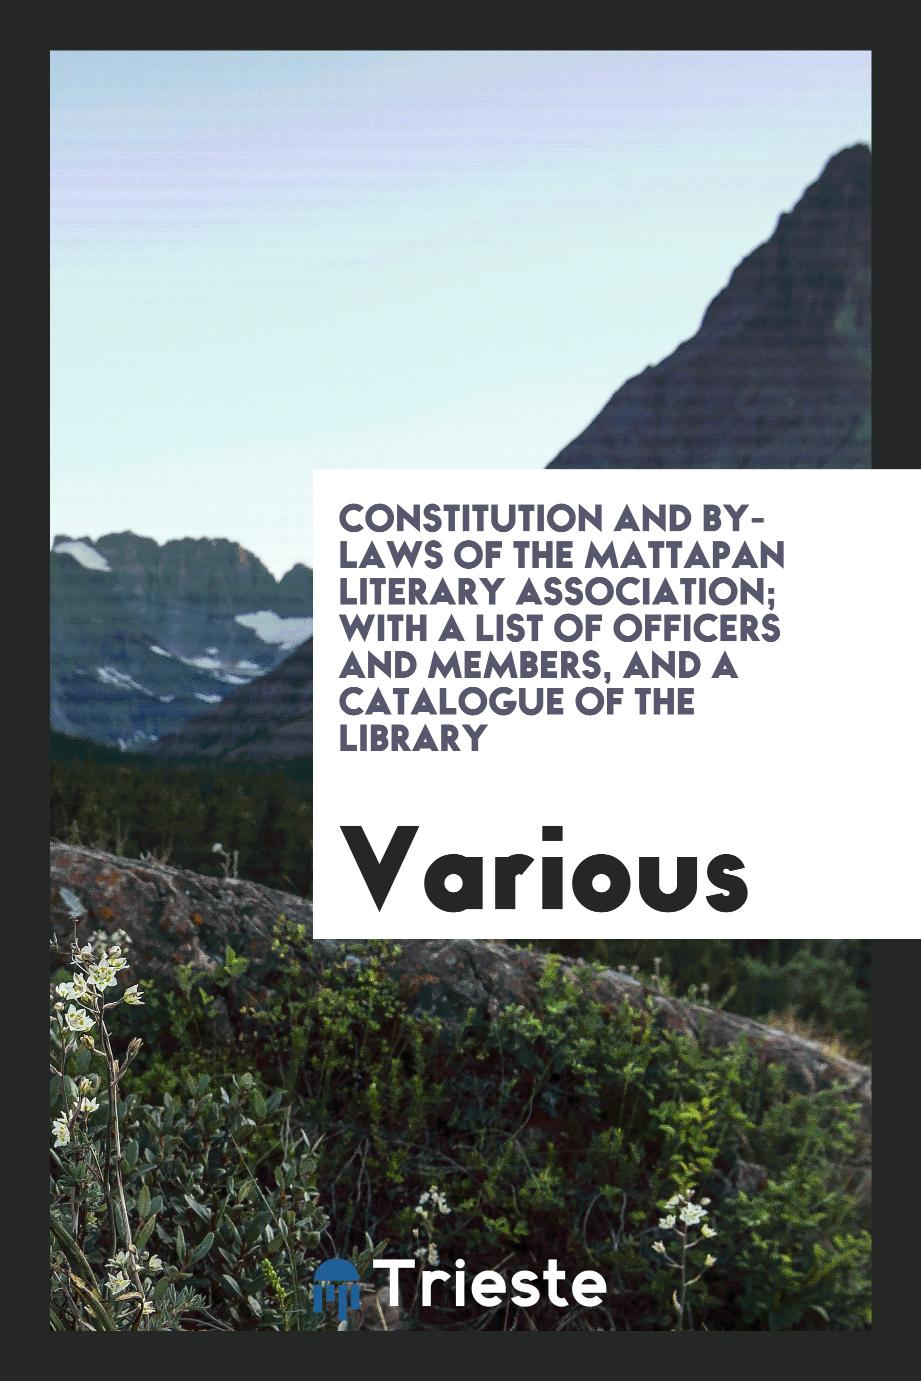 Constitution And By-Laws of the Mattapan Literary Association; With A List Of Officers And Members, and a Catalogue of the Library